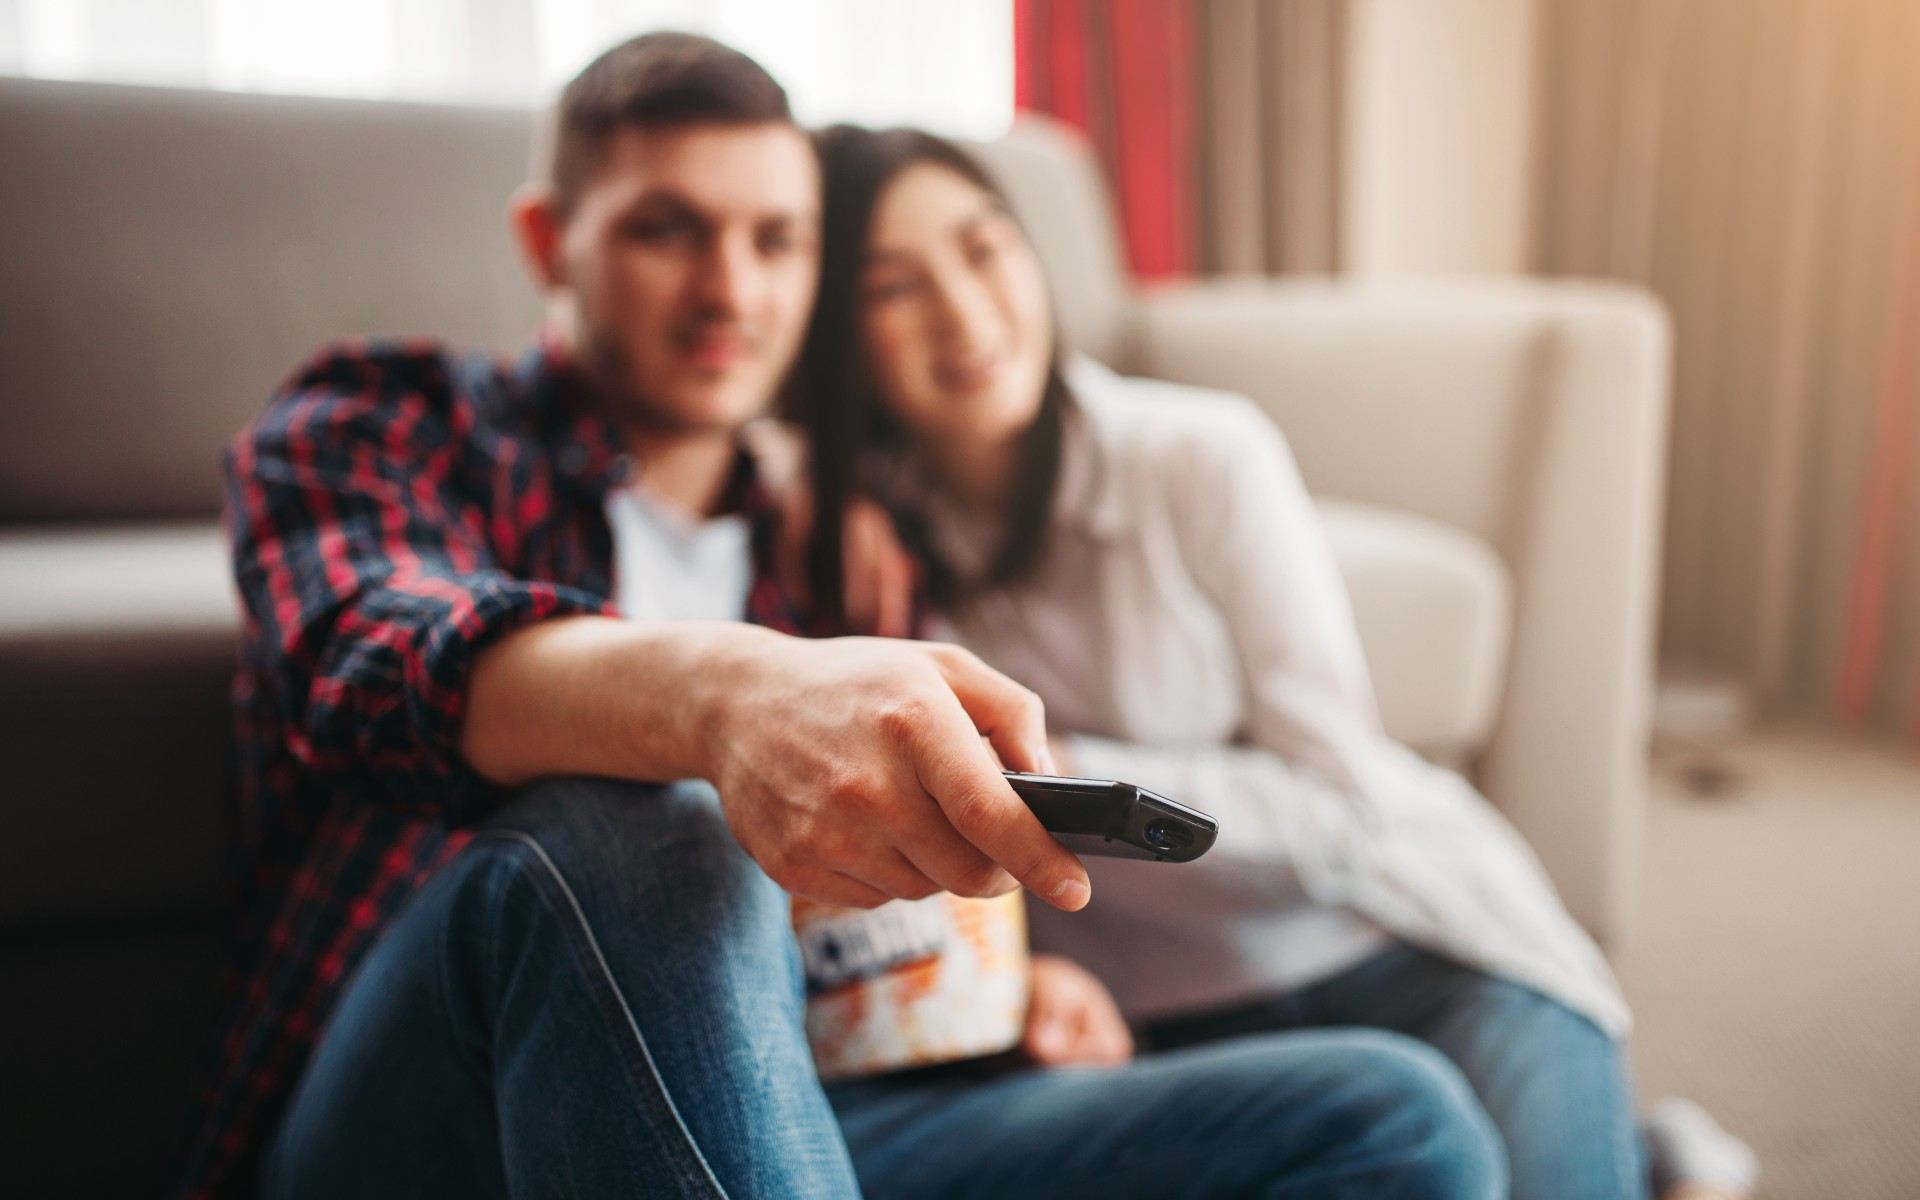 A romantic couple, man and woman, sitting down together on the floor cuddled up getting ready to watch a movie with the male holding a remote in his hand.